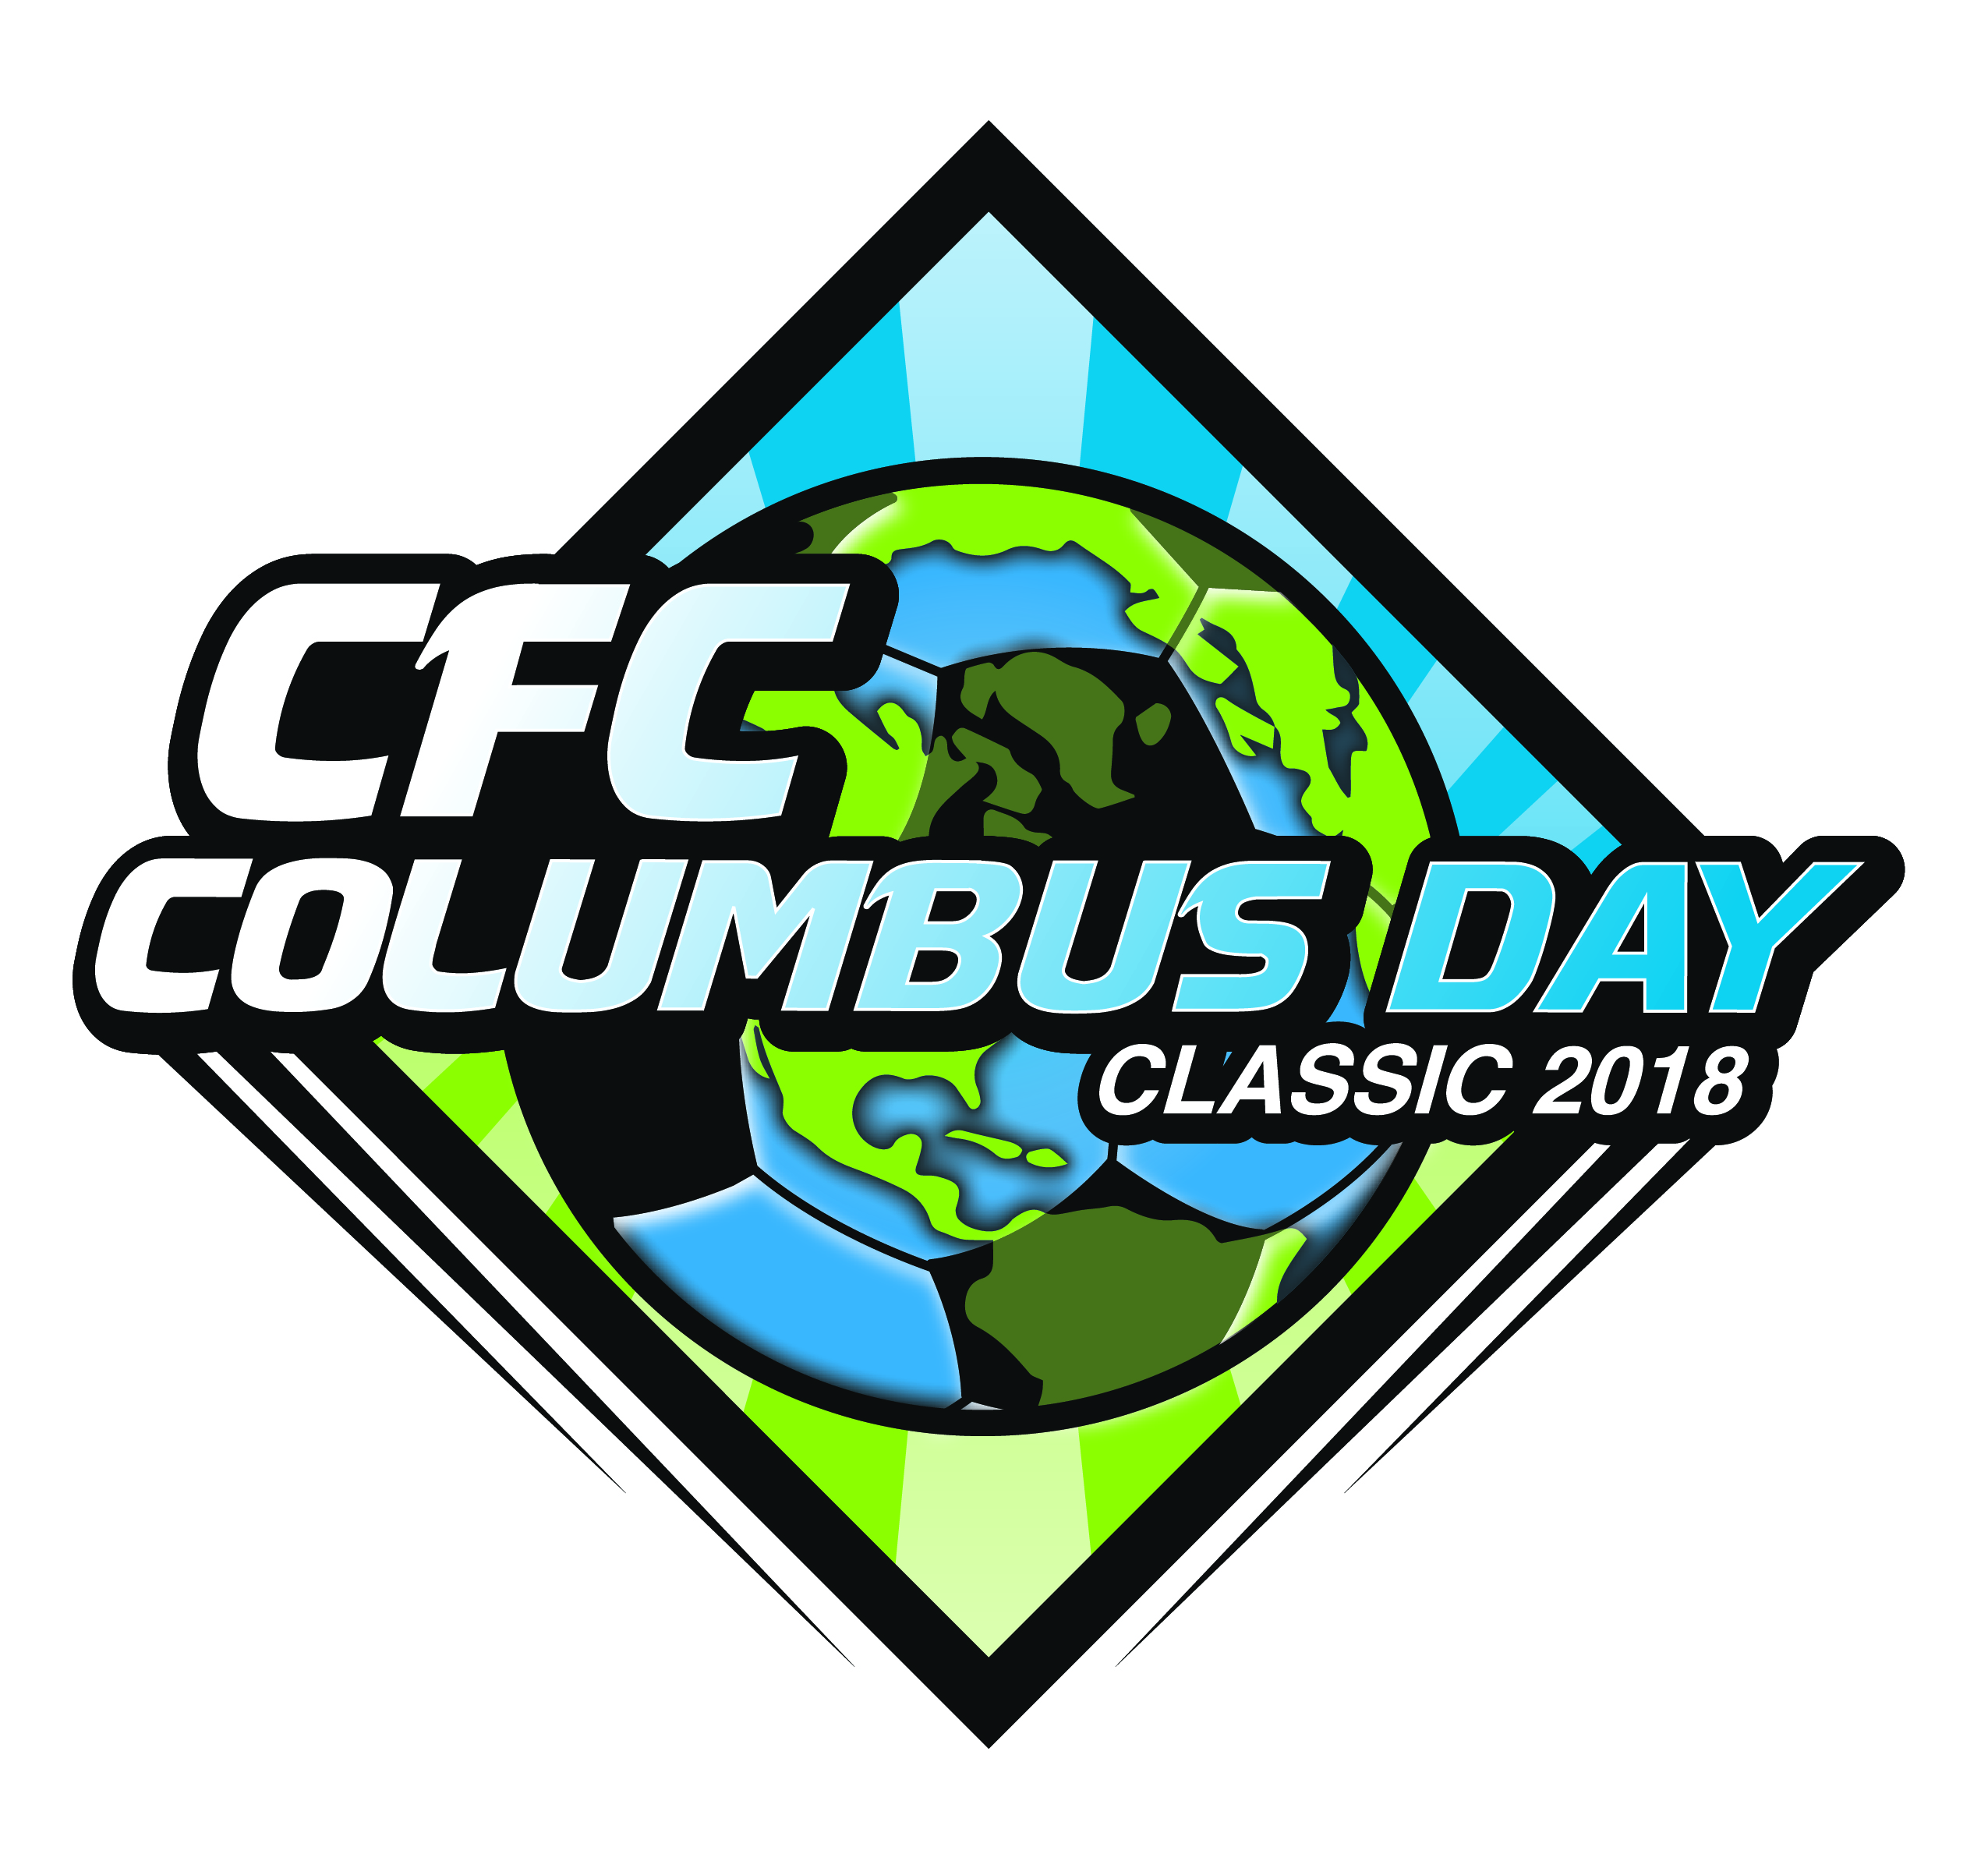 262 shares Columbus Day is a public holiday in many parts of the United States that commemorates the voyage of Christopher Columbus to the Americas in 1492 In 2018